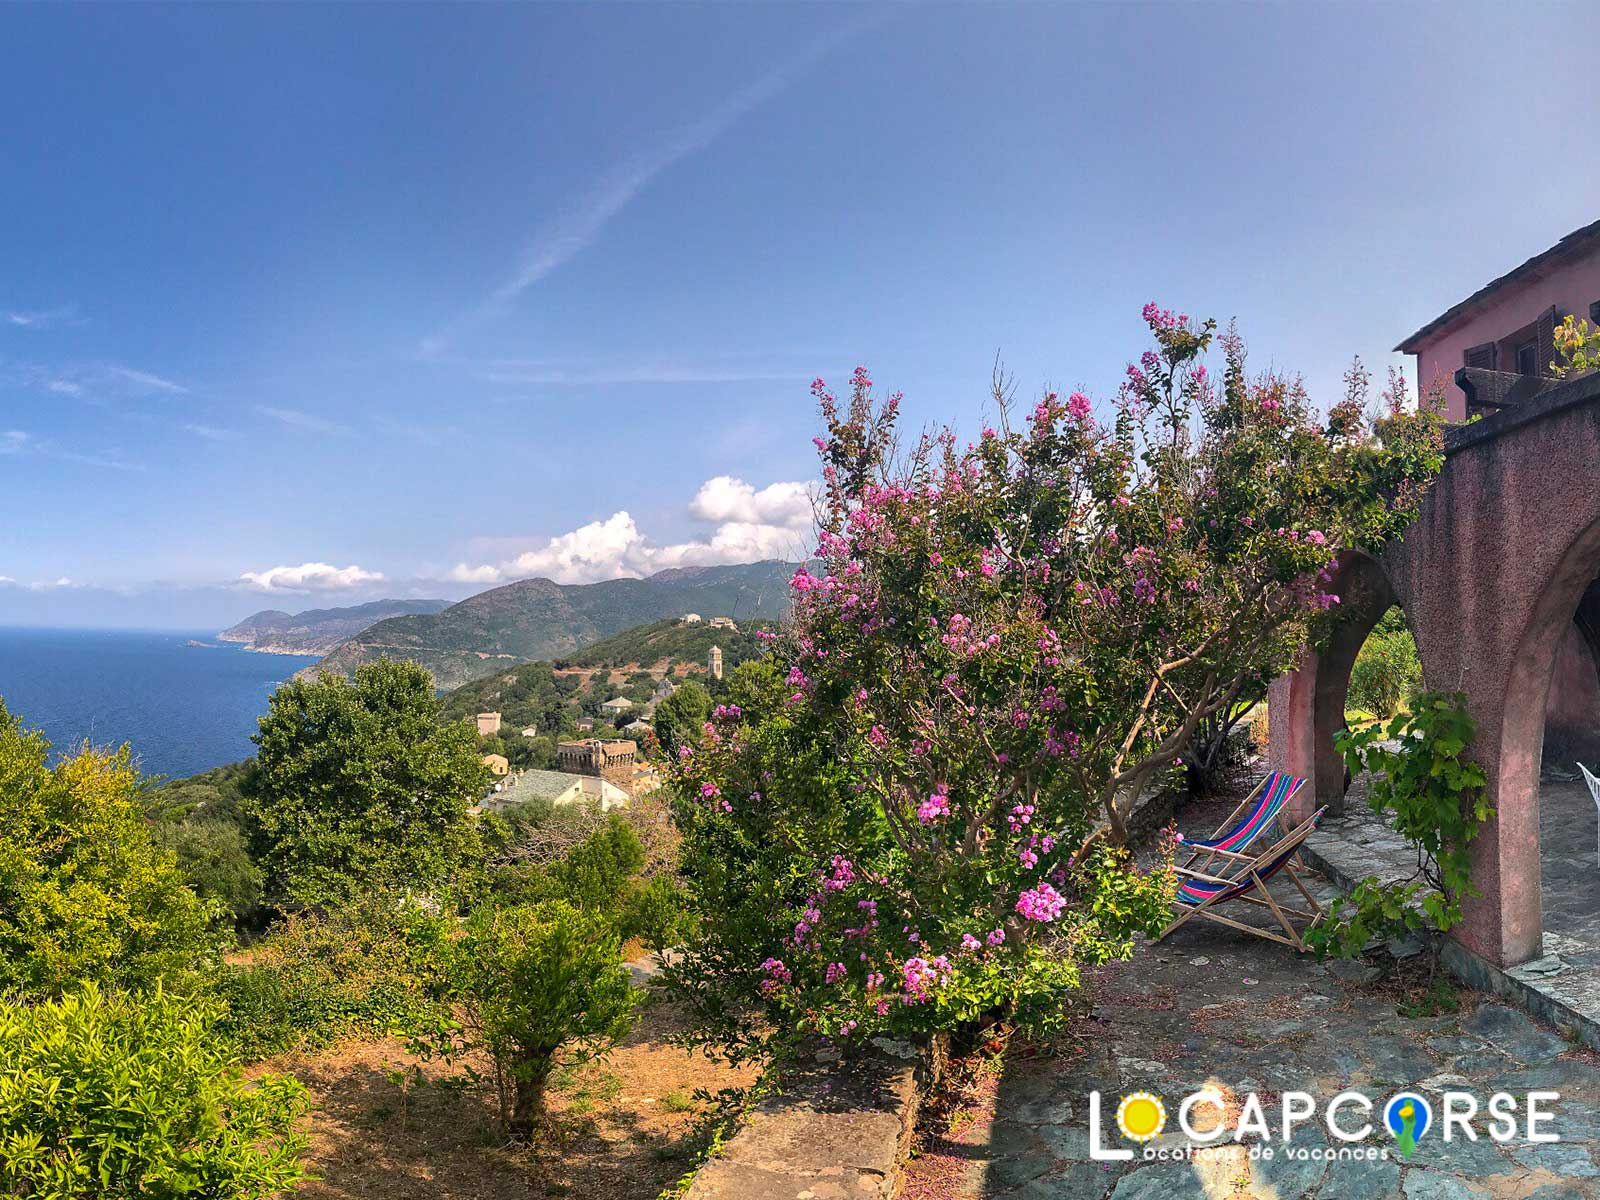 Locations Cap Corse - Holiday house in Pino with large terrace and panoramic sea view for 9 people (Holiday rental in North Corsica)